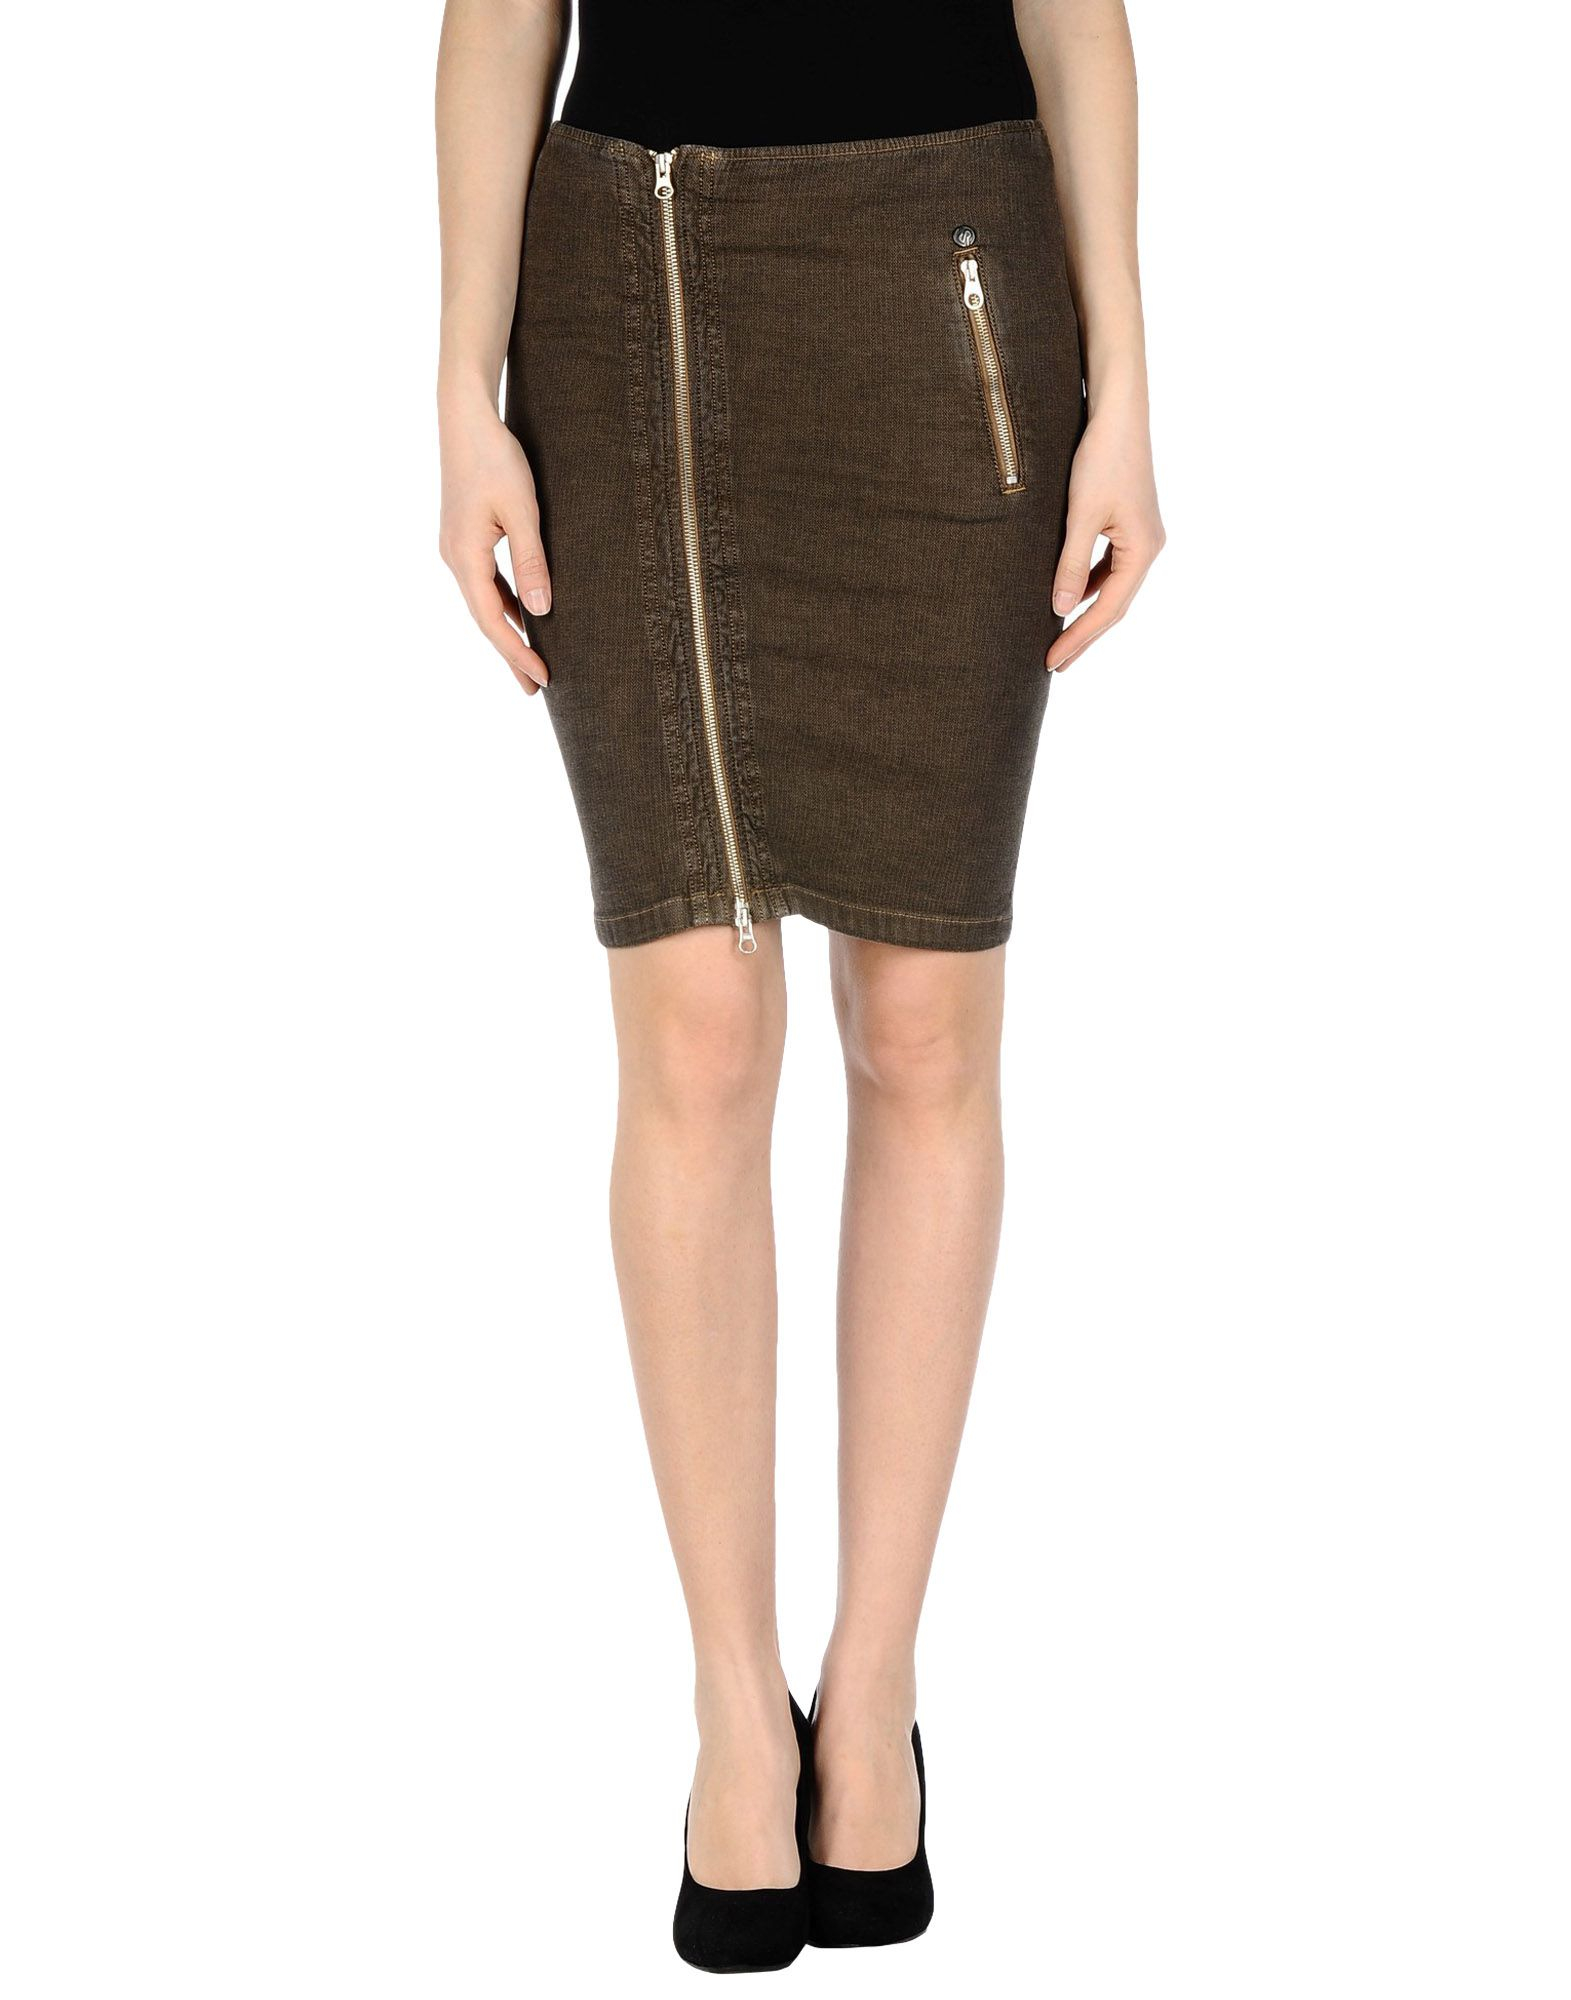 khaki knee length skirt